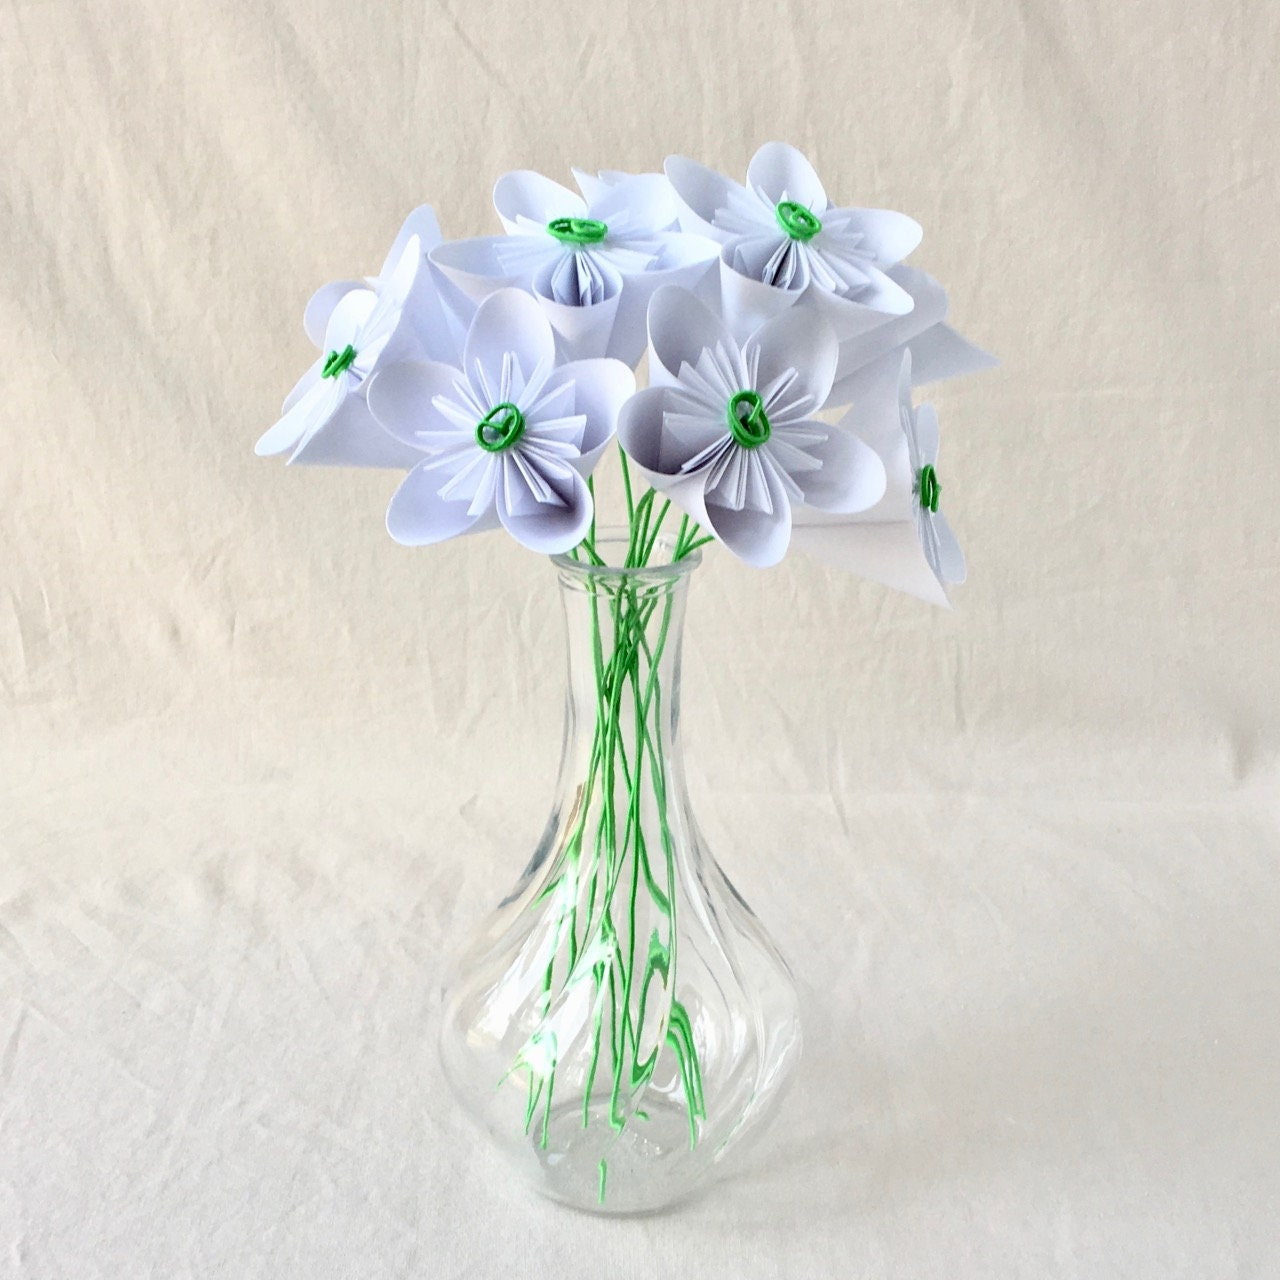 White Origami Flower Bouquet Office Decor Cancer Patient